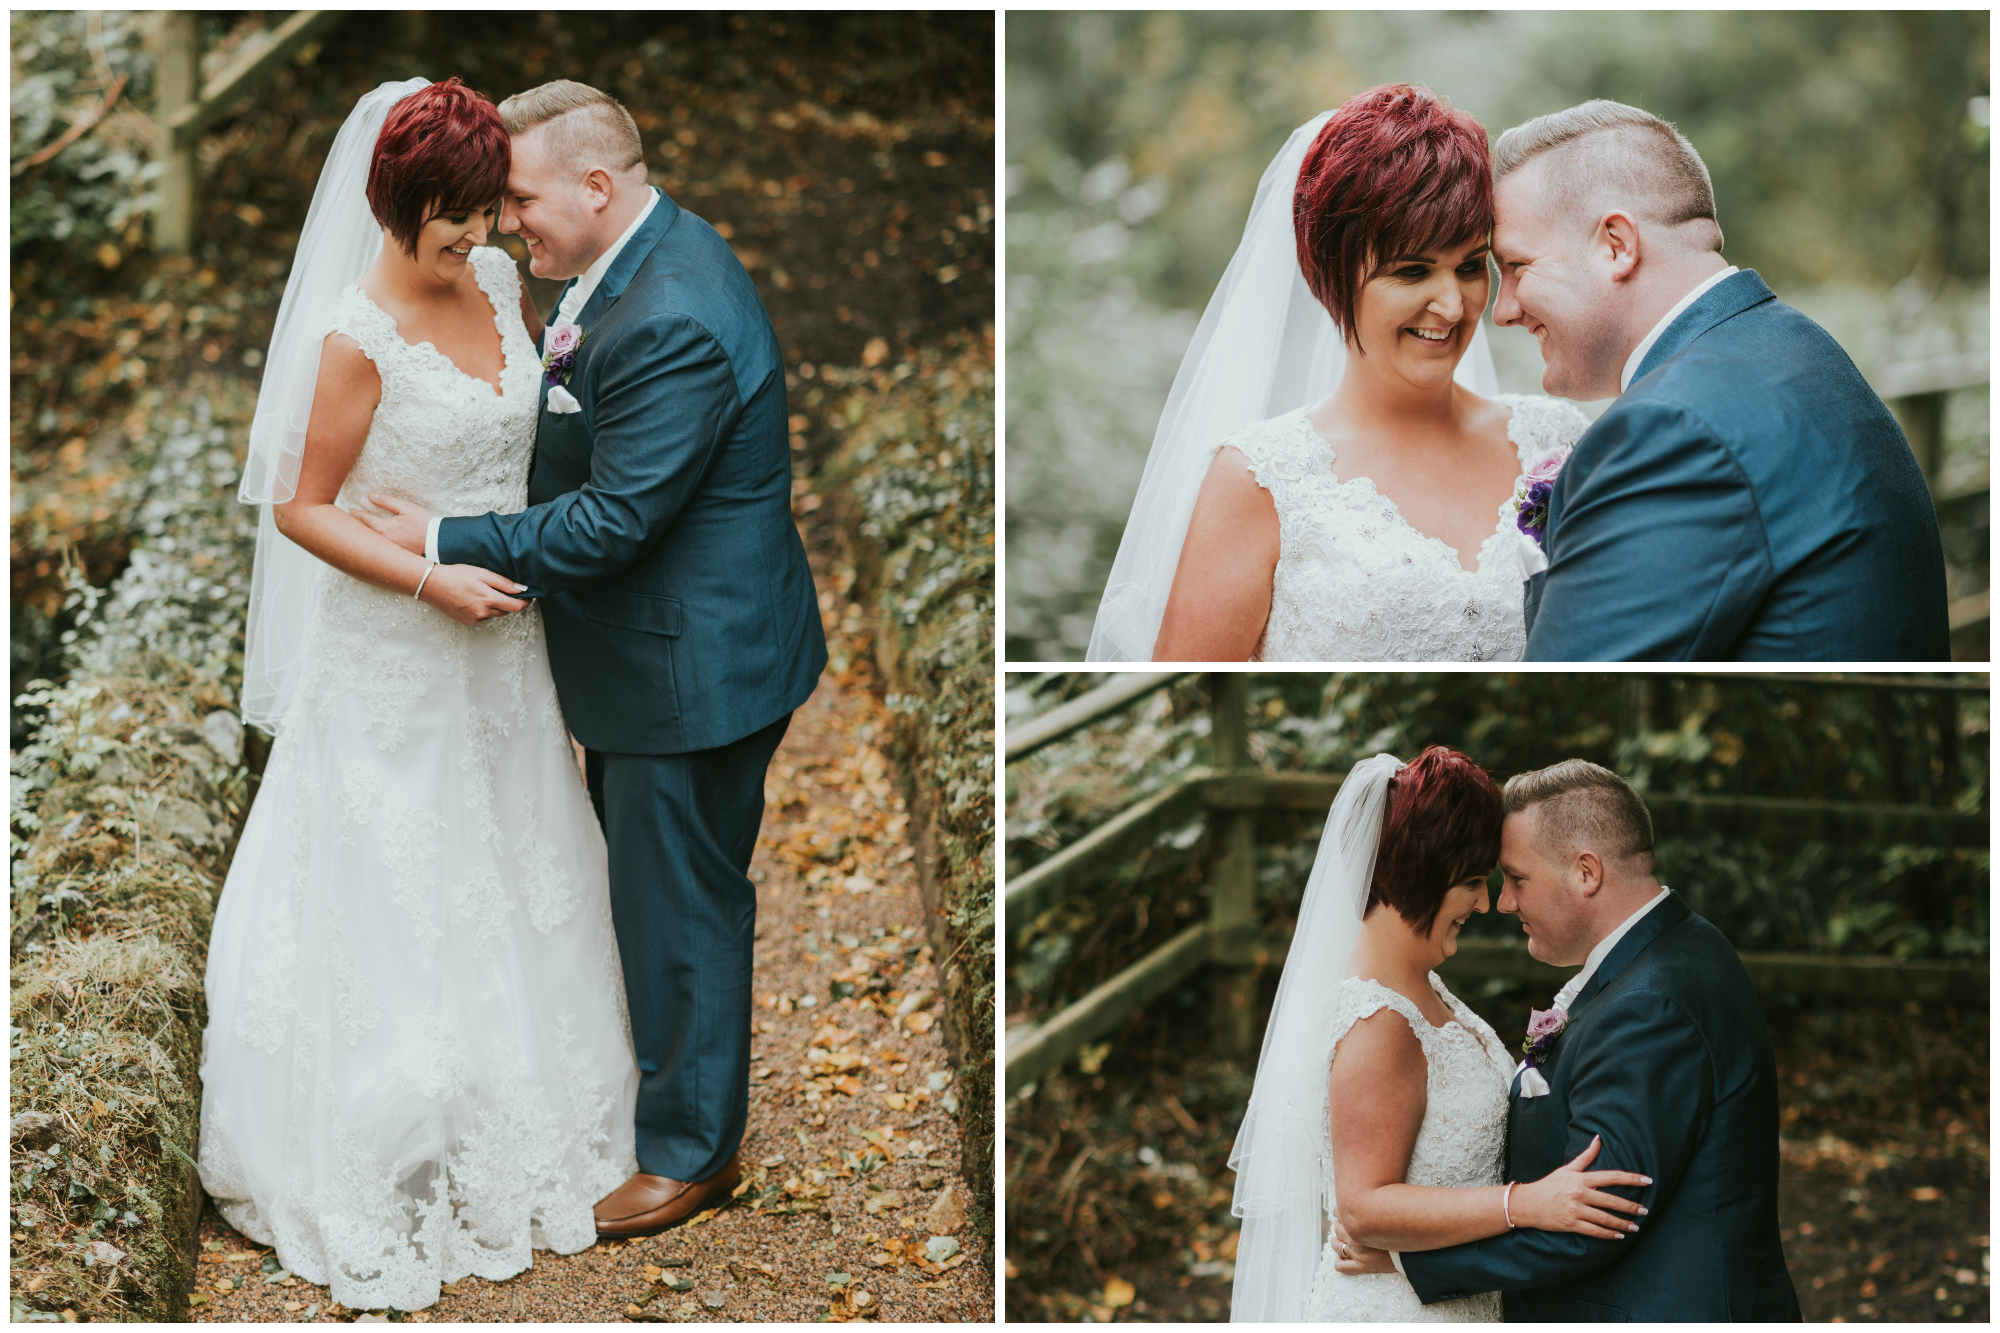 Roe Park Wedding Photographer Pure Photo N.I bride and groom portraits